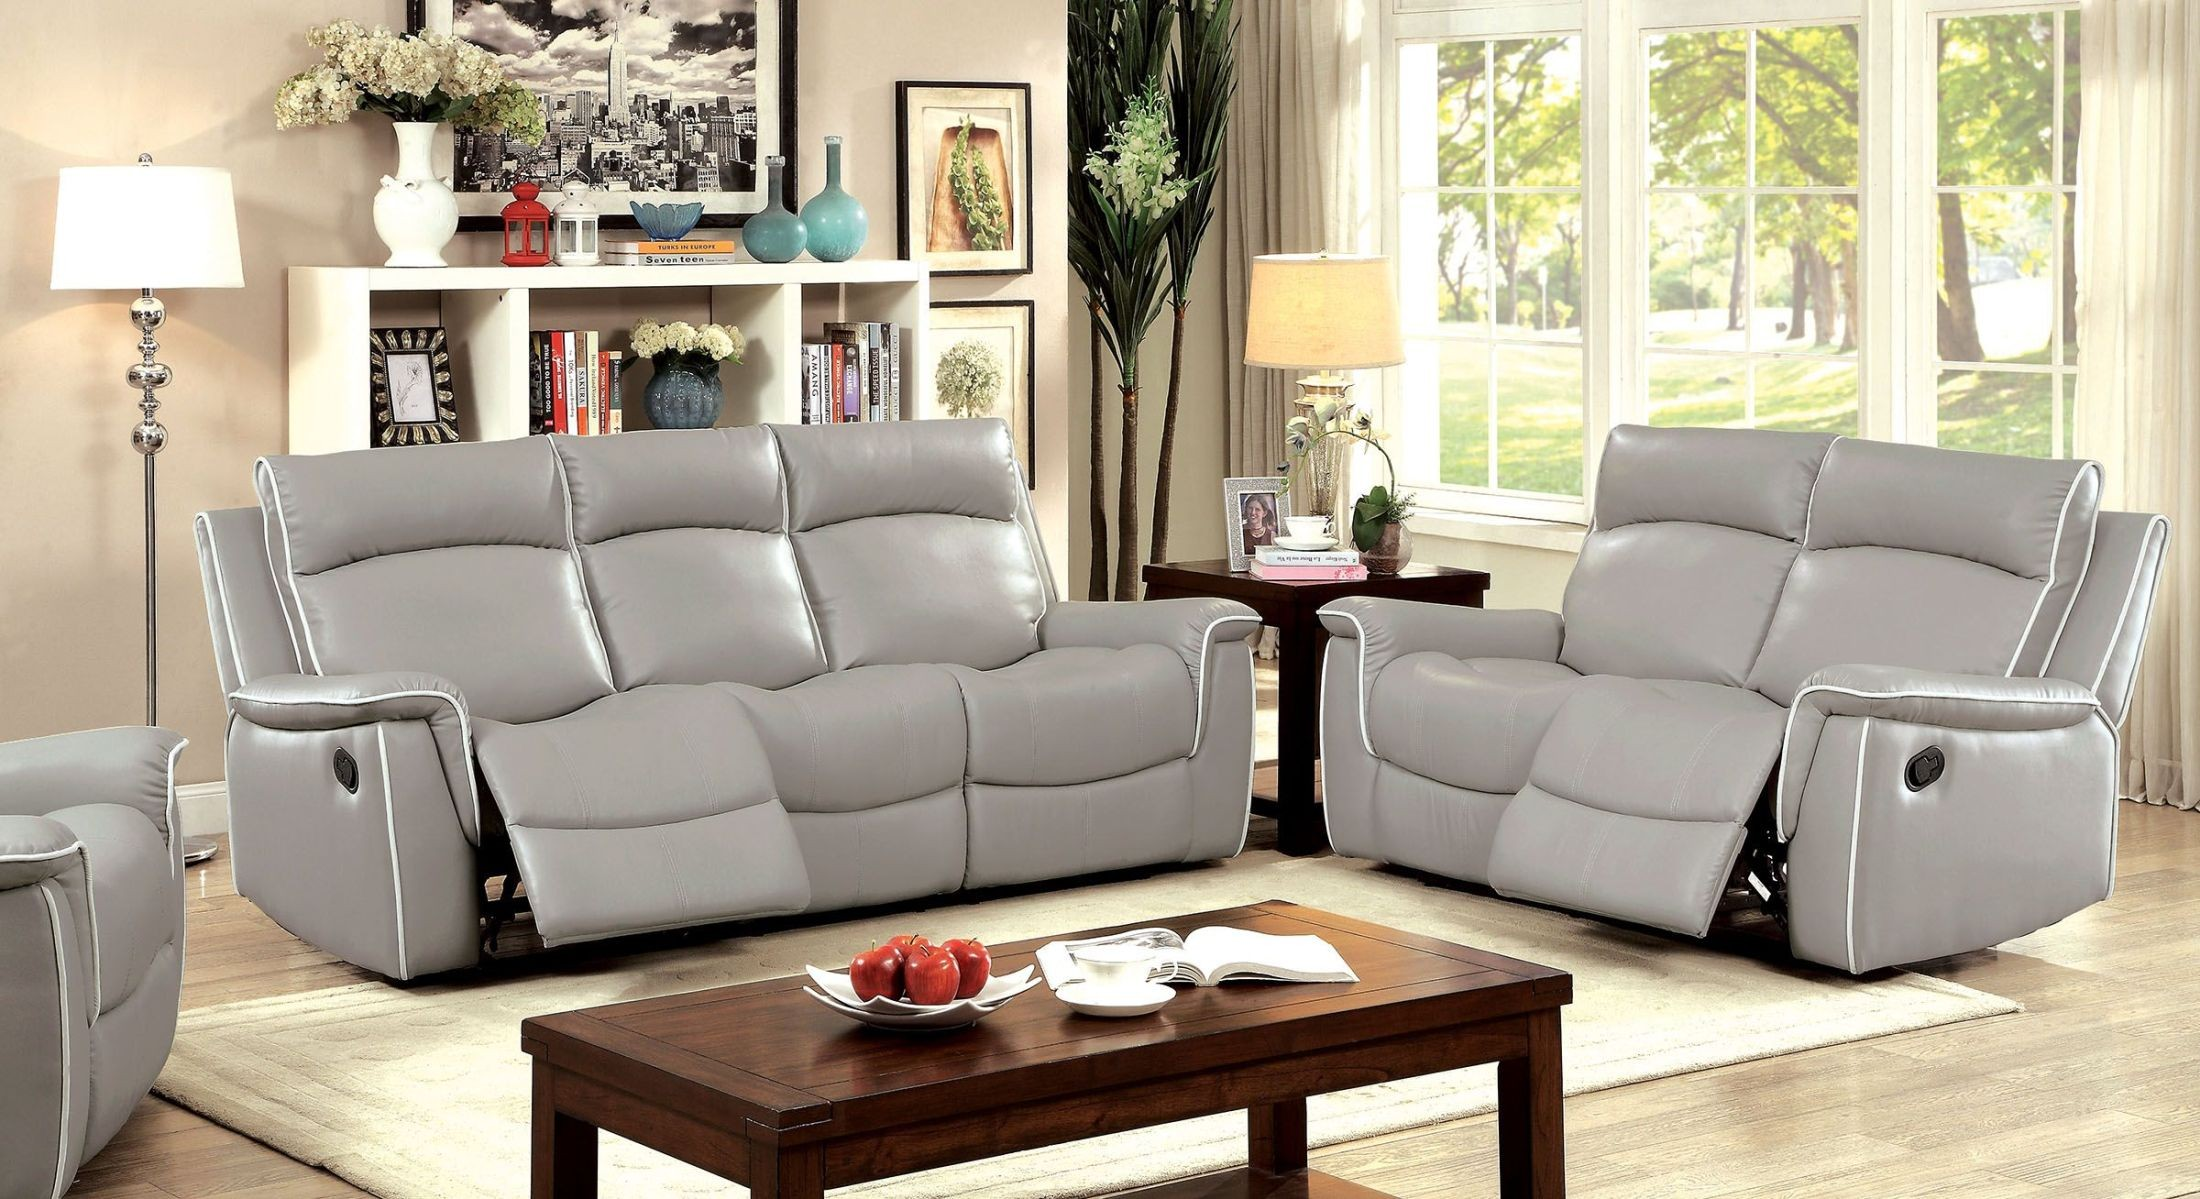 Salome light gray recliner living room set cm6798 sf for Cheap reclining living room sets